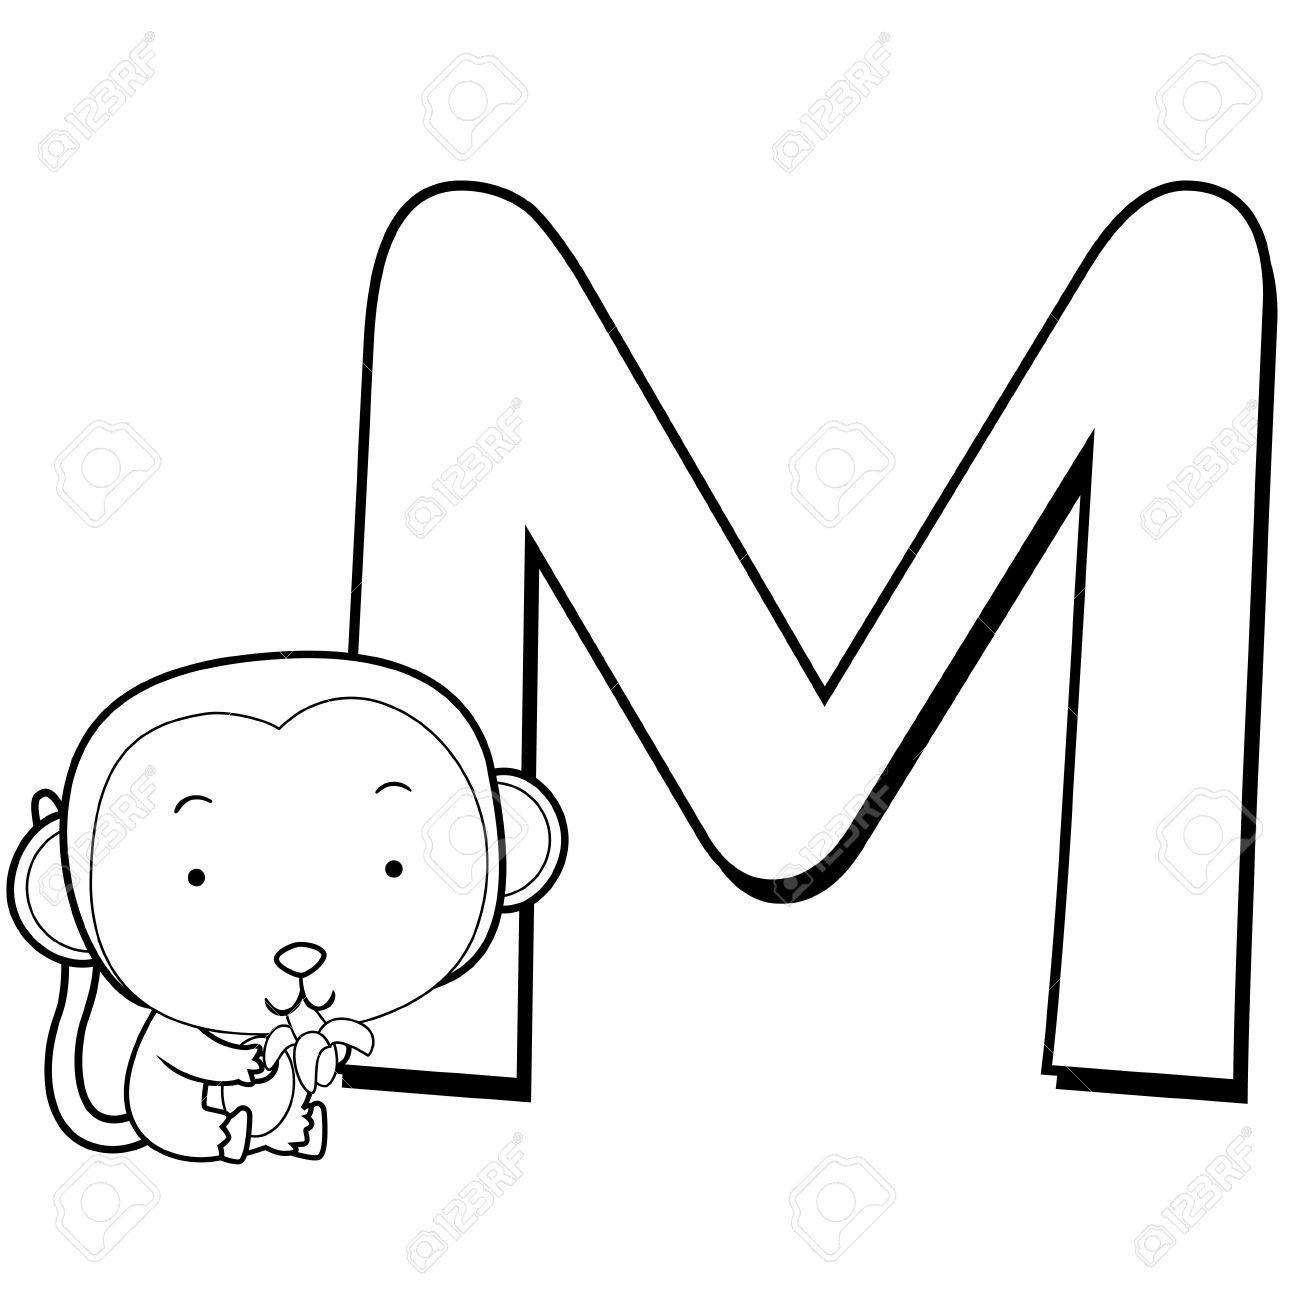 Coloring Alphabet for Kids, M with monkey Stock Vector - 14539348